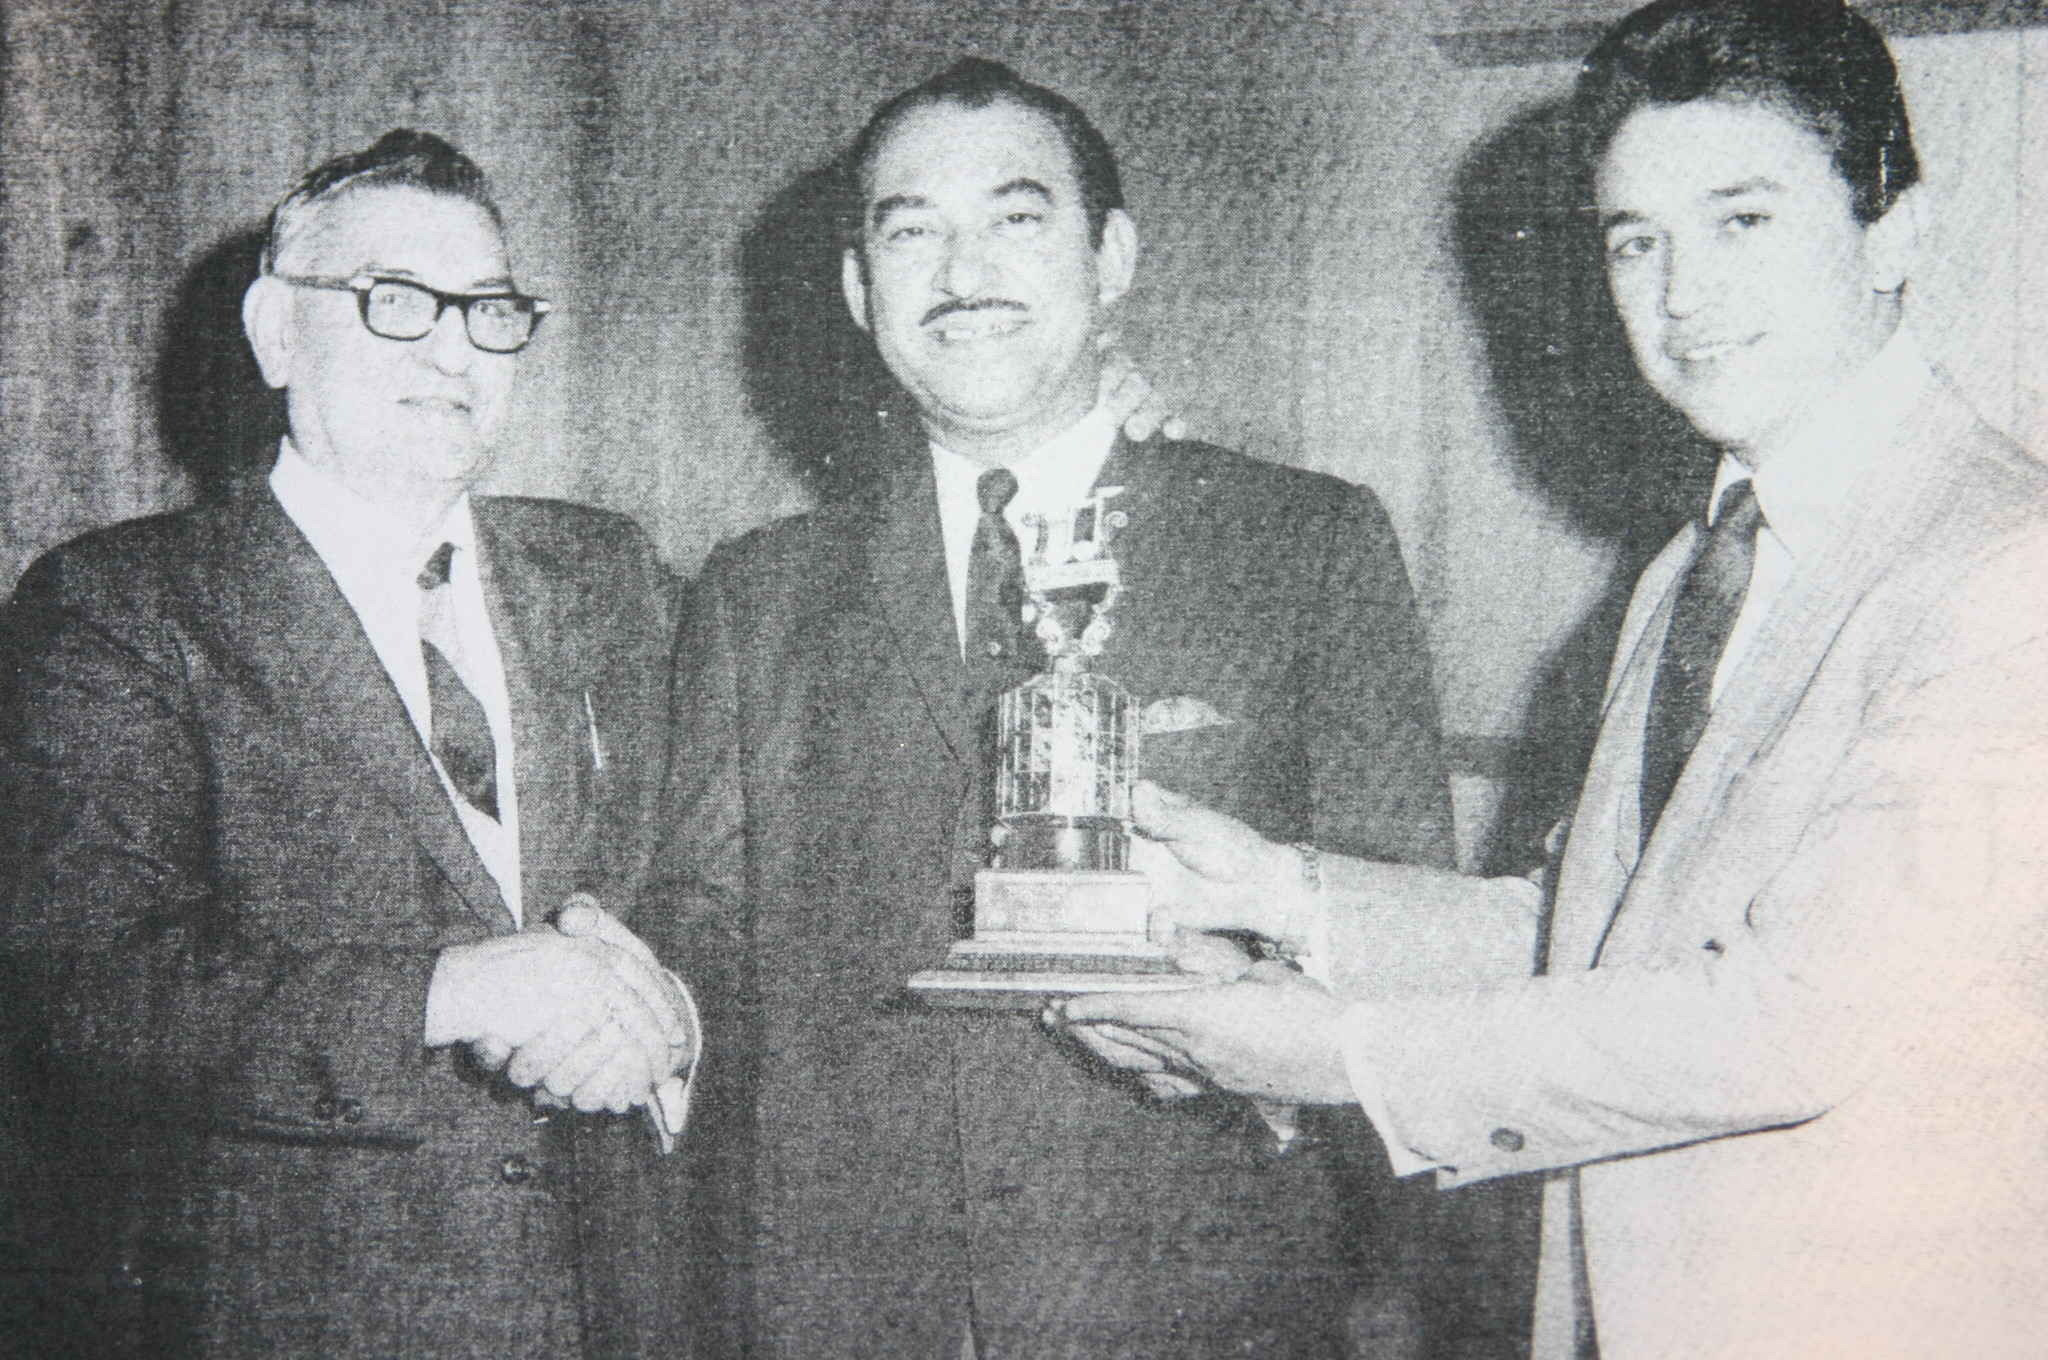 Jose H. Gonzalez, Agapito, and Paulino Bernal